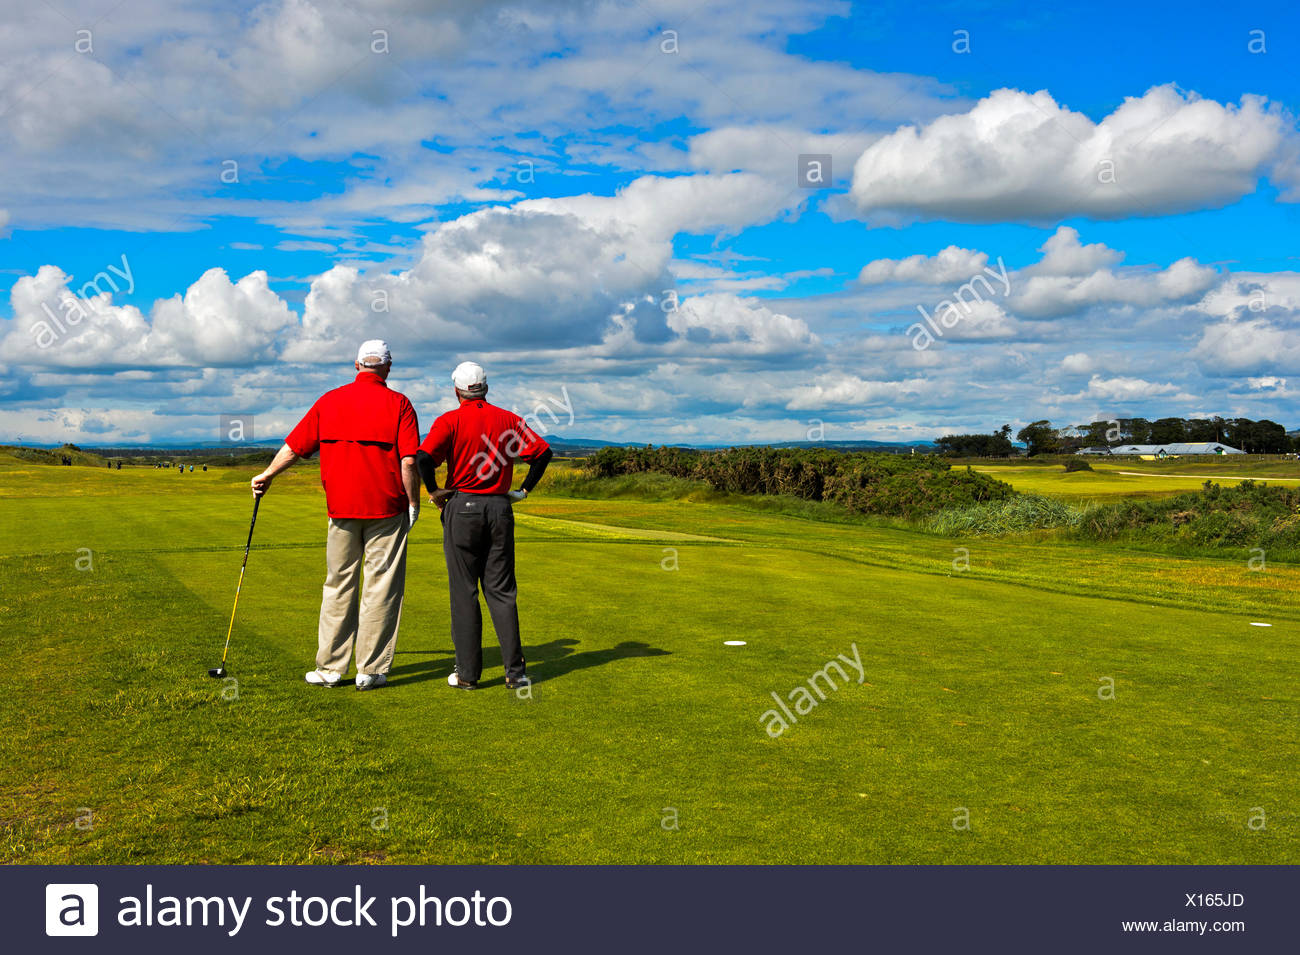 Two golfers on the Jubilee Course, St Andrews Links, St Andrews, Fife, Scotland, United Kingdom - Stock Image